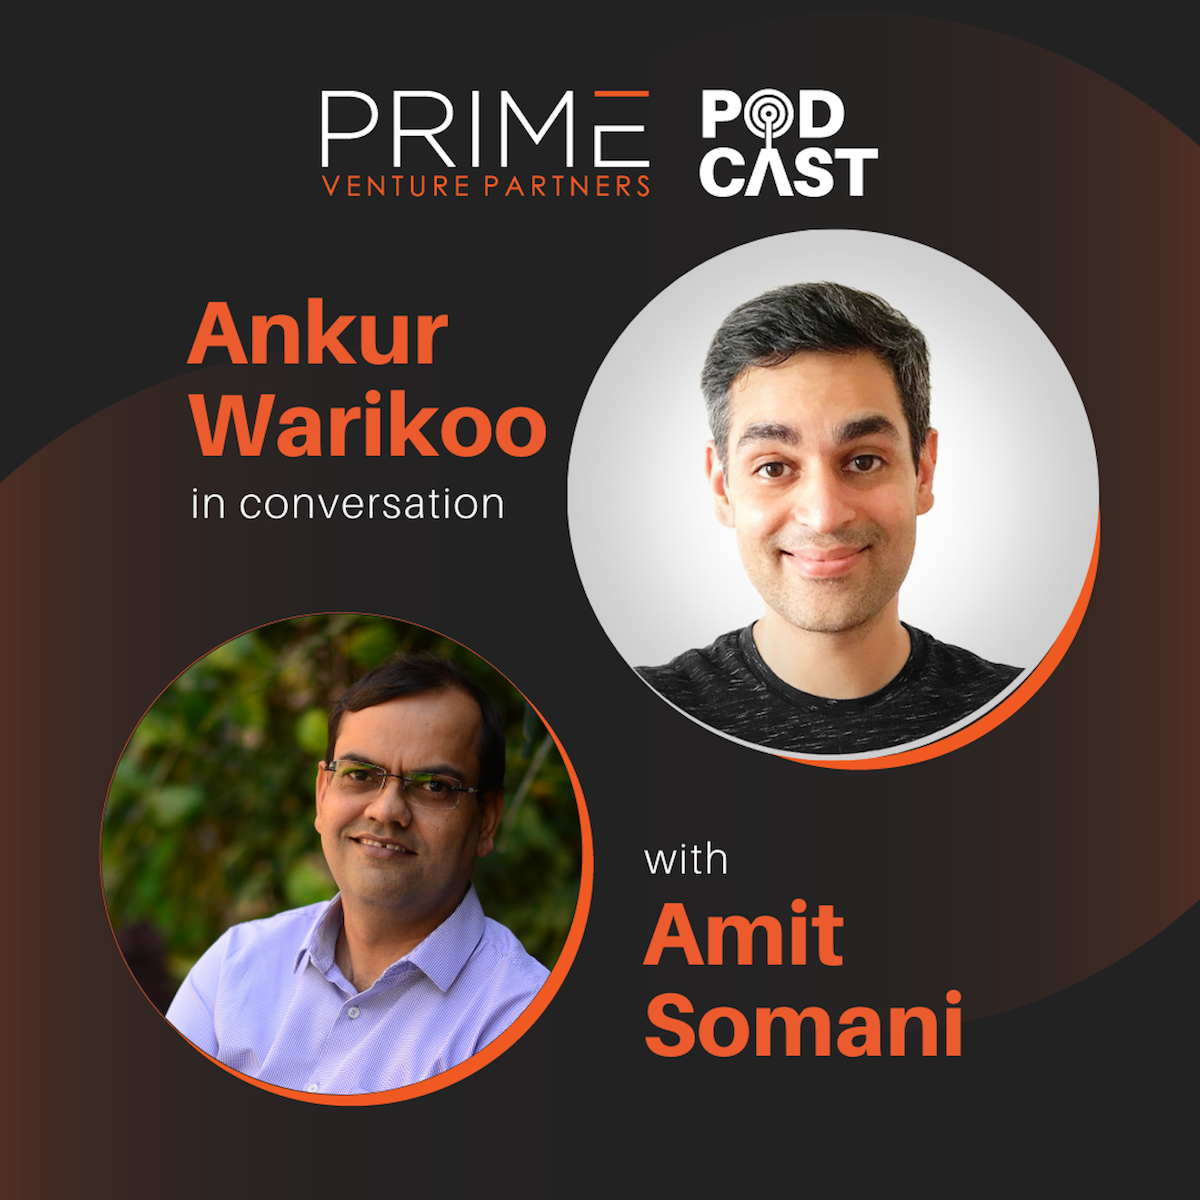 A graphic with guest(Ankur Warikoo) and host's (Amit Somani) name and image.